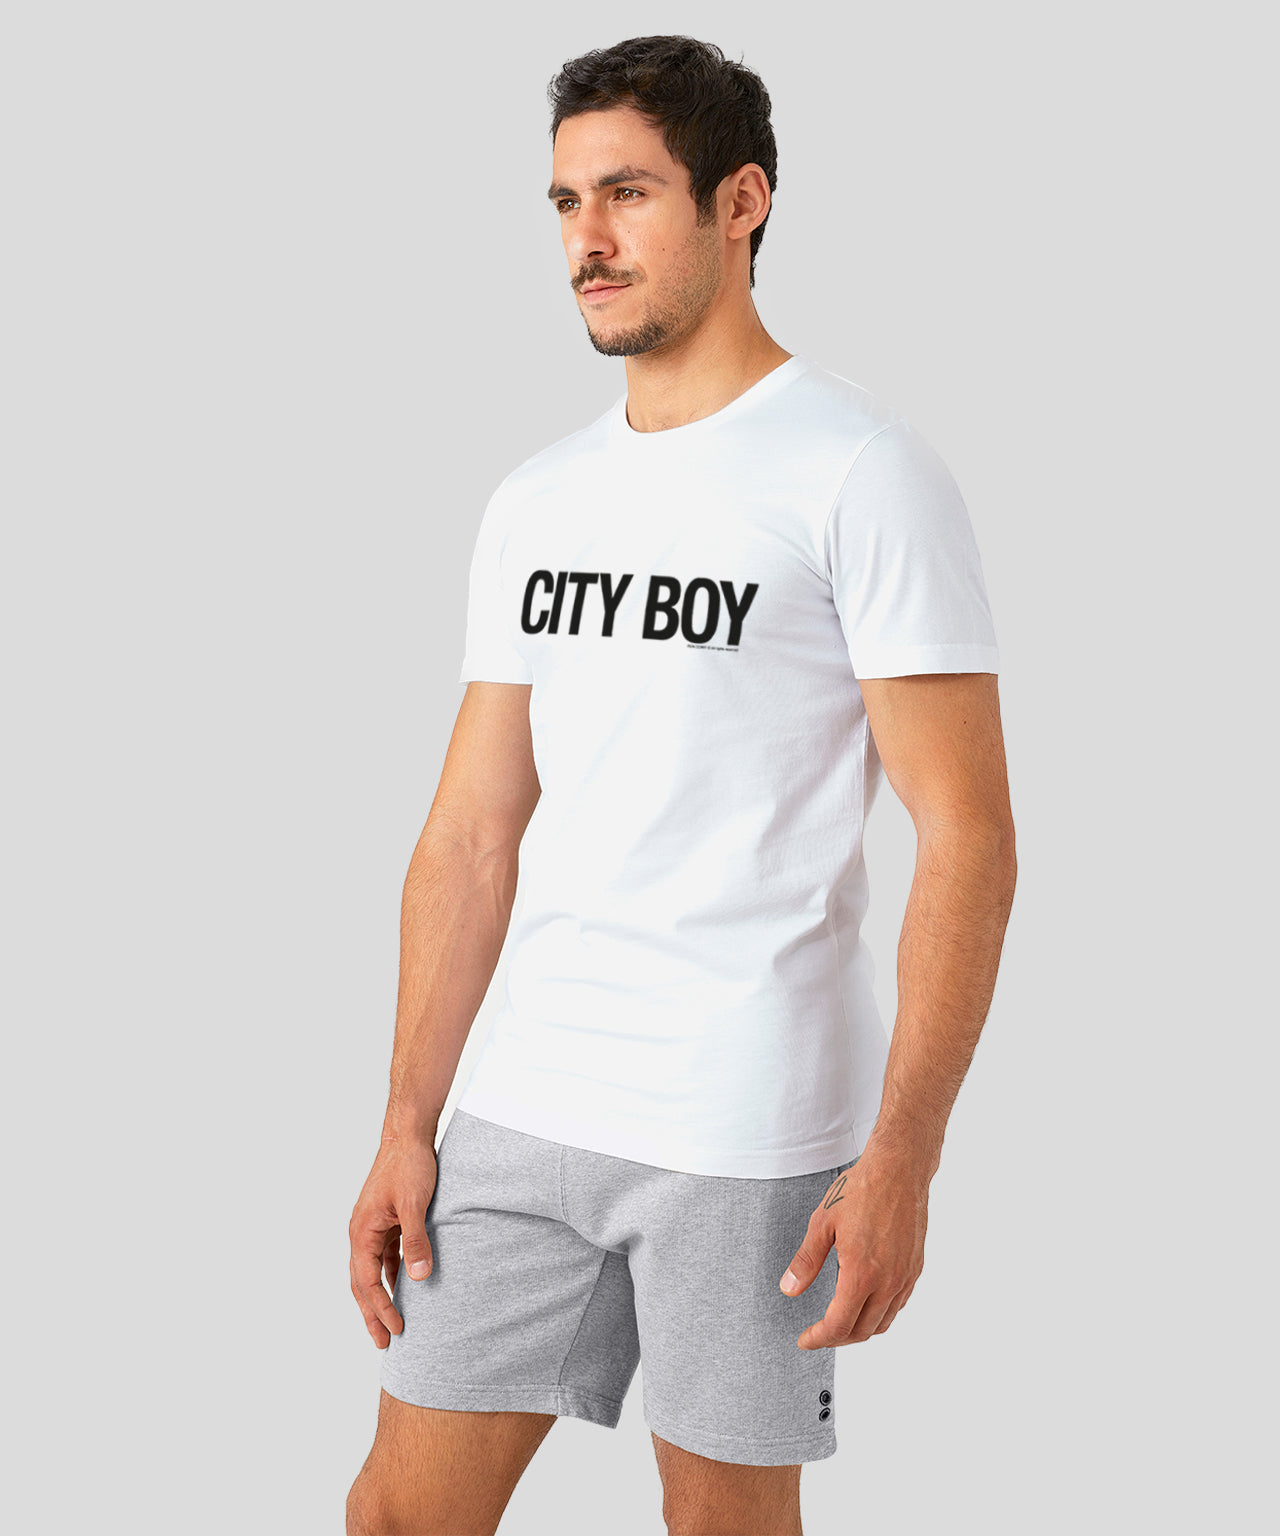 T-Shirt City Boy - white